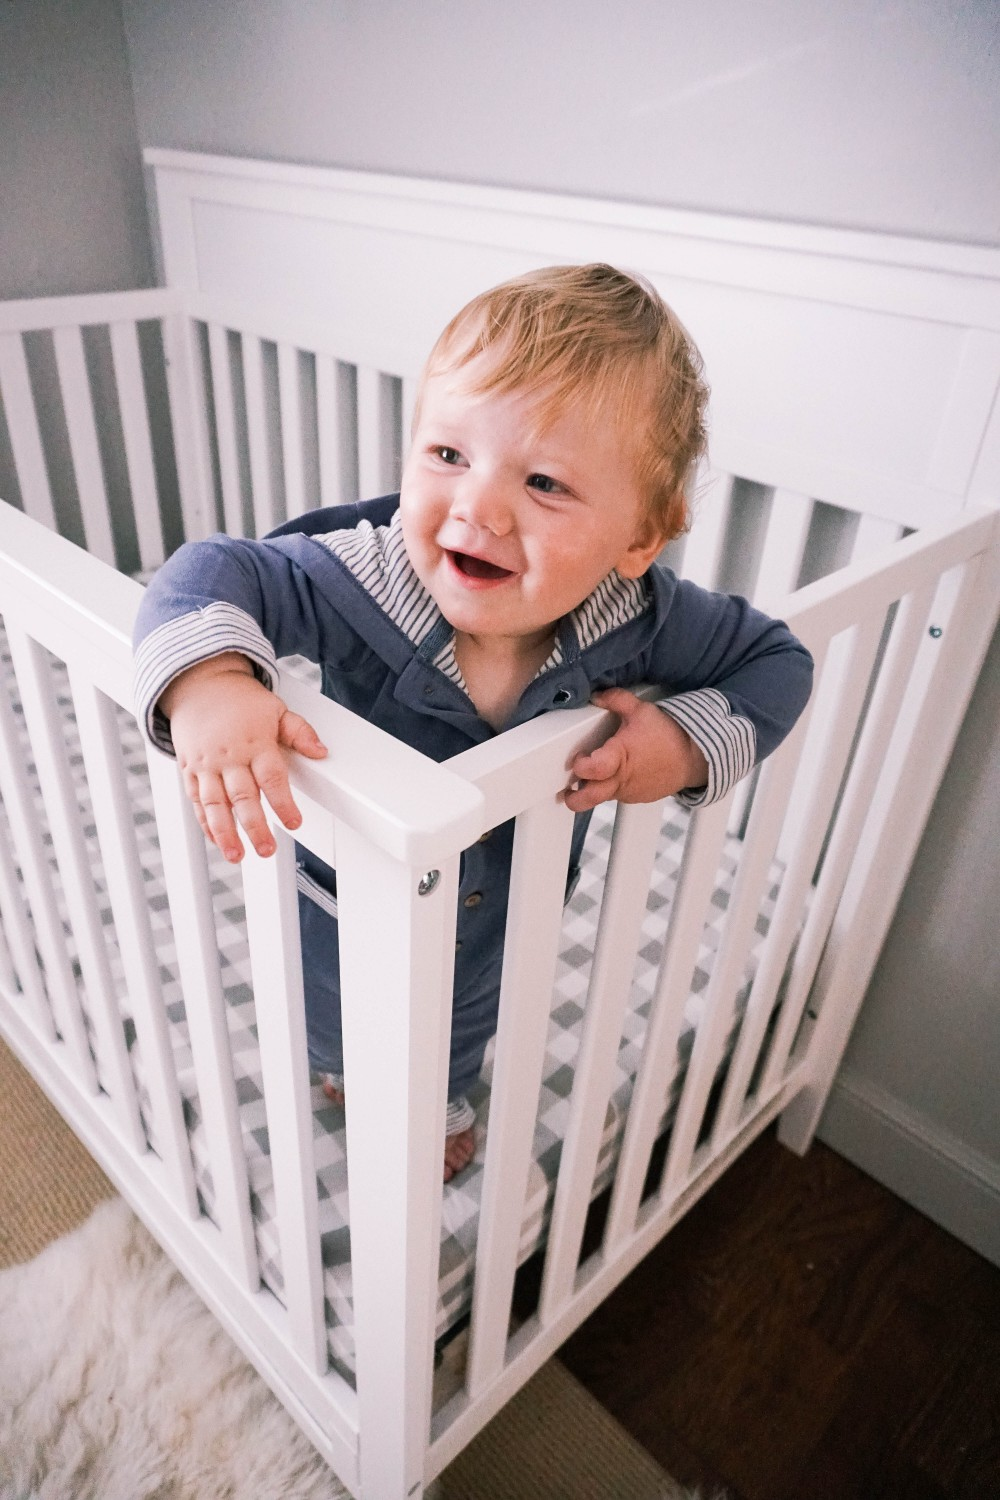 Carter's Baby-JCPenney-Baby Boy Clothes Under $30-Fall Fashion for Baby-Baby Clothing Sale-Have Need Want 6